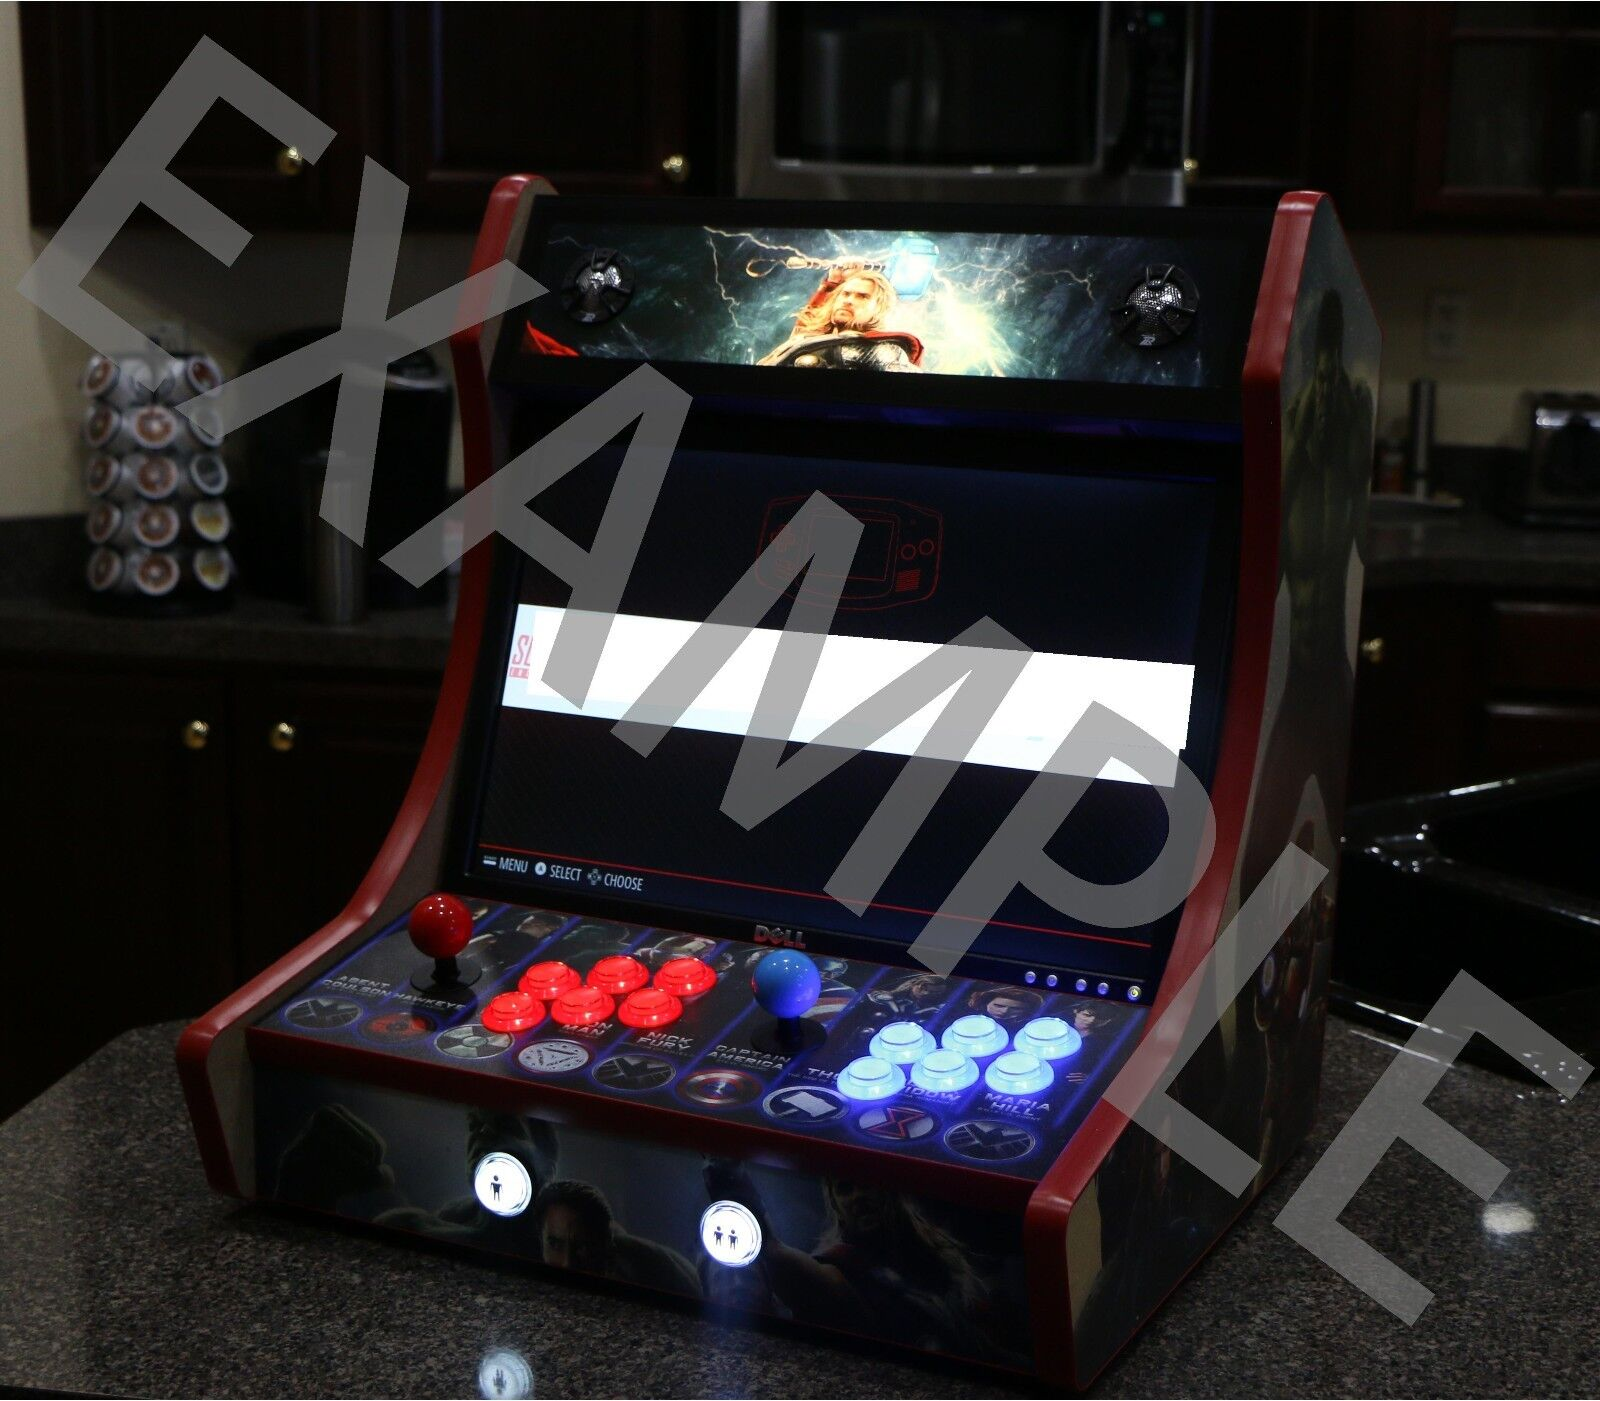 Bartop arcade cabinet mdf do it yourself kit with t molding cuts bartop arcade cabinet mdf do it yourself kit with t molding cuts solutioingenieria Image collections